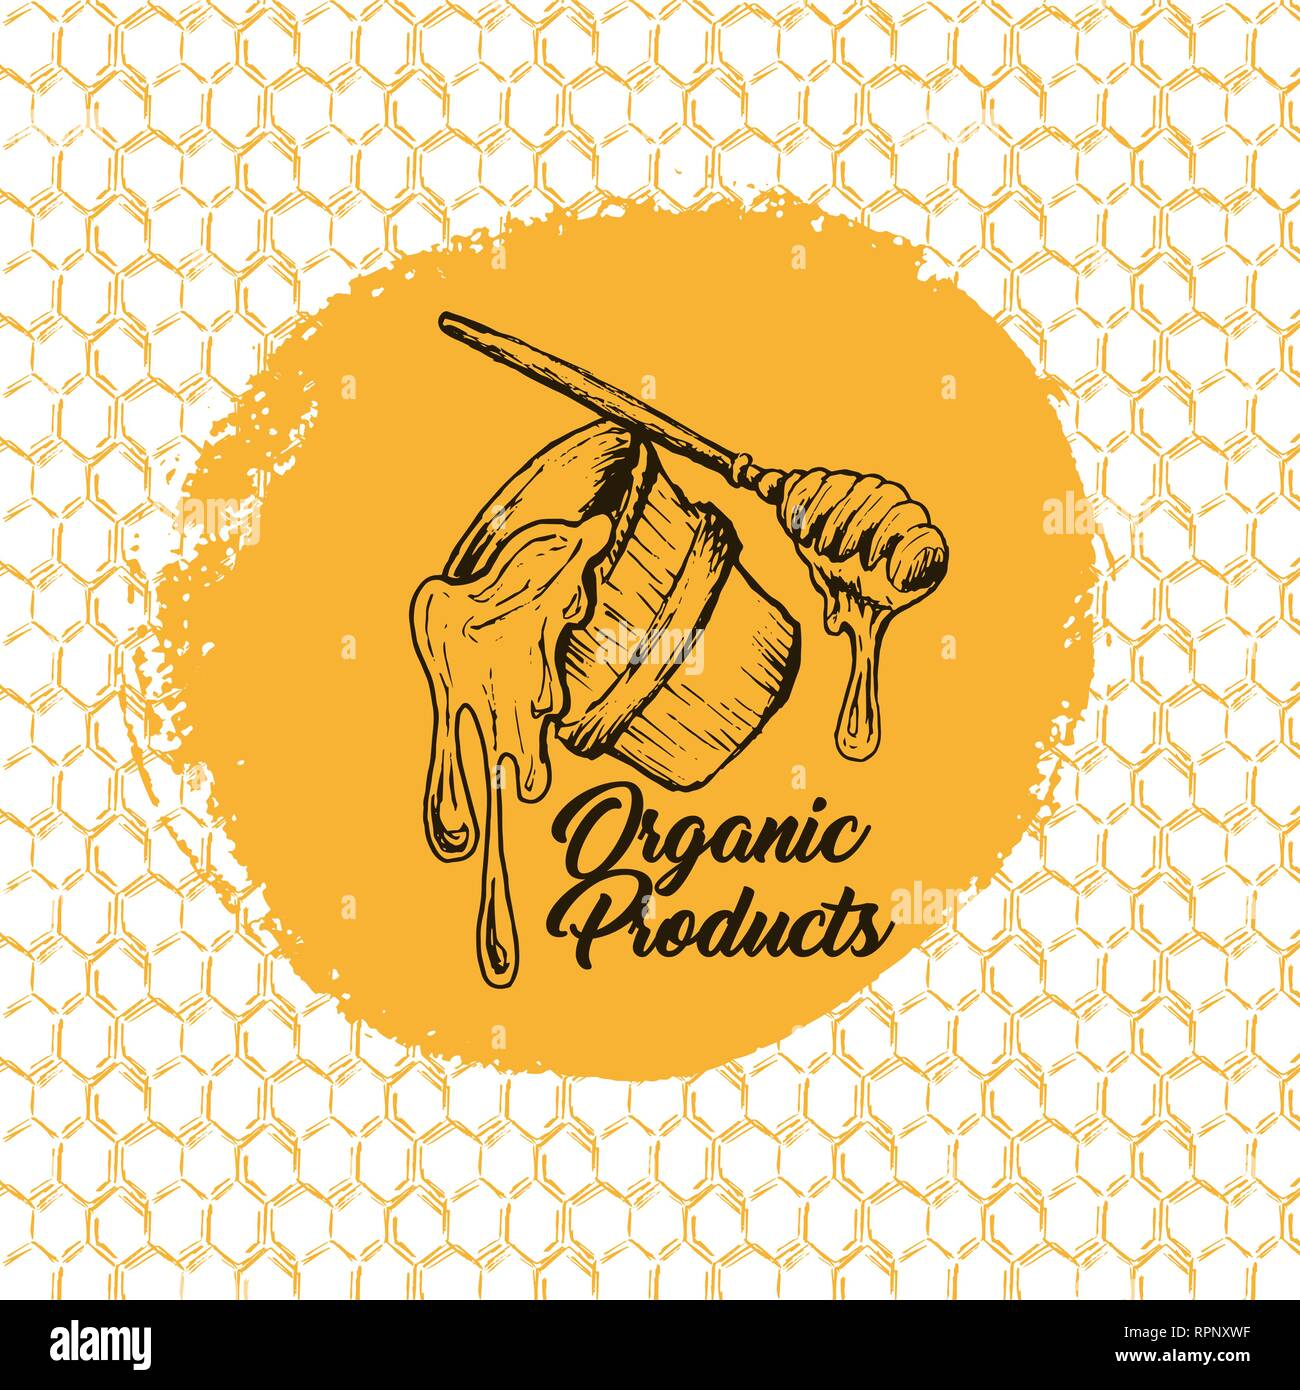 Honey Bee, Sketch Logo Design with Honeycomb Pattern. Vintage hand drawn isolated illustration with handcrafted lettering. - Stock Vector